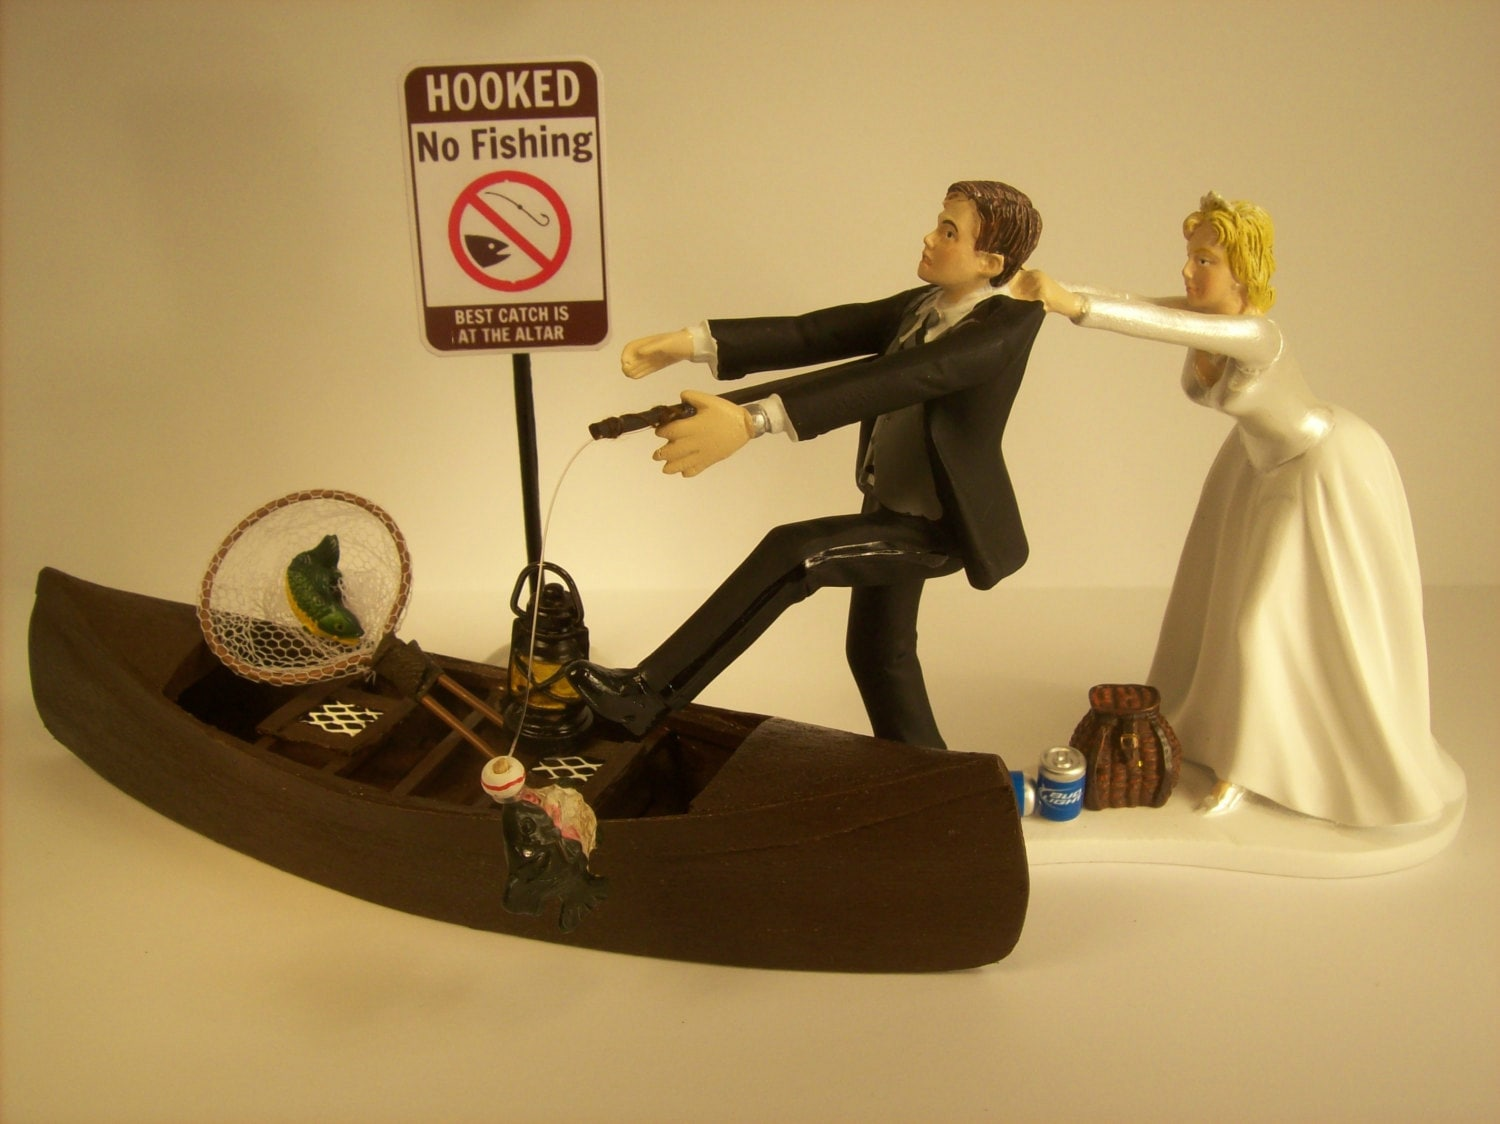 No FISHING Come back Funny Wedding Cake Topper w/ Boat Bride | Etsy